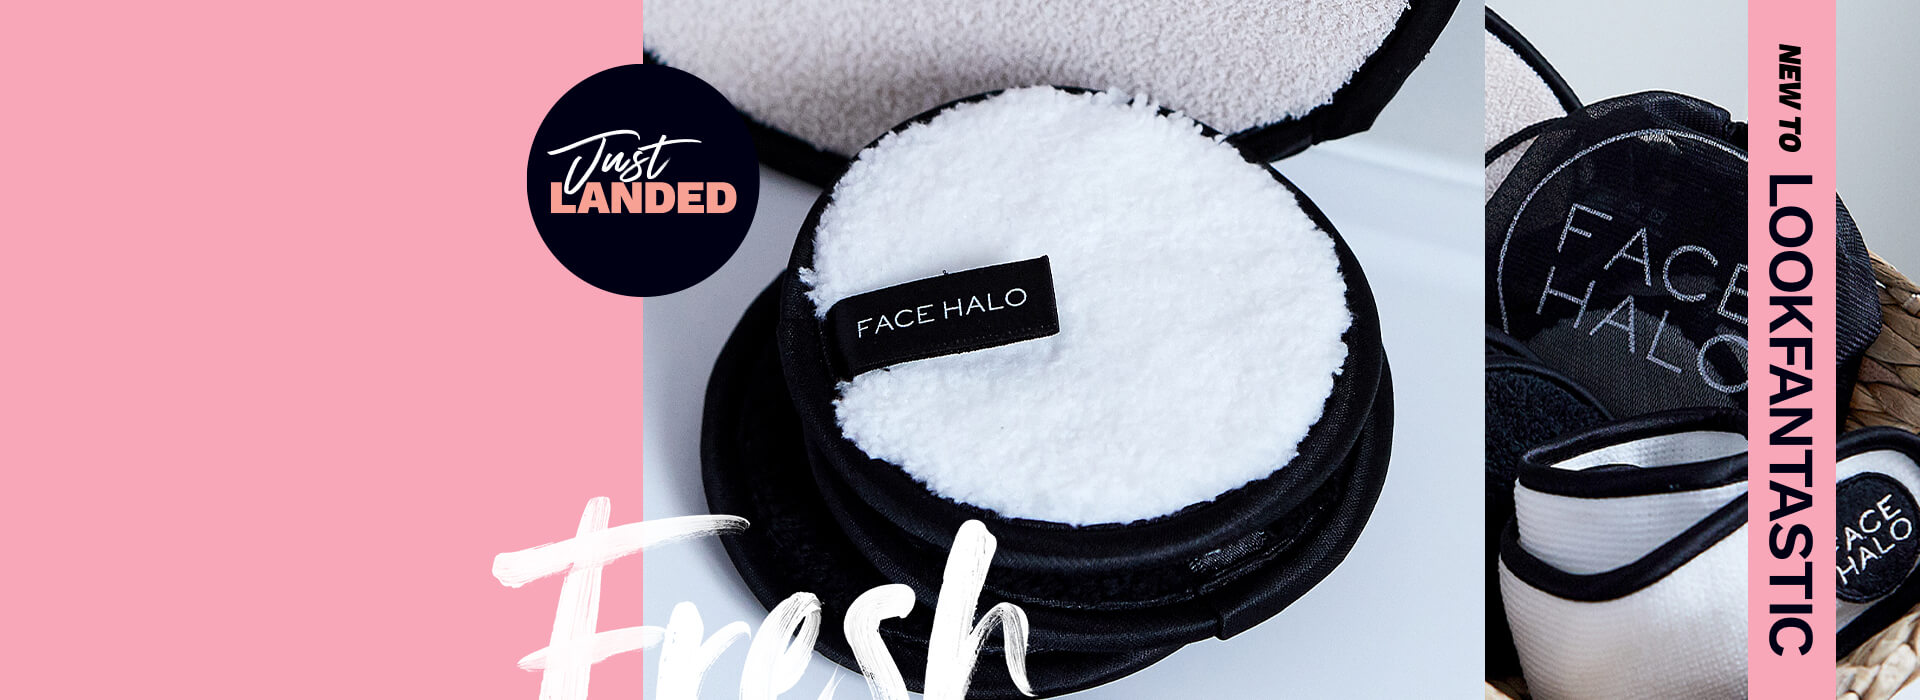 Discover smoother skin with new brand face halo. shop now